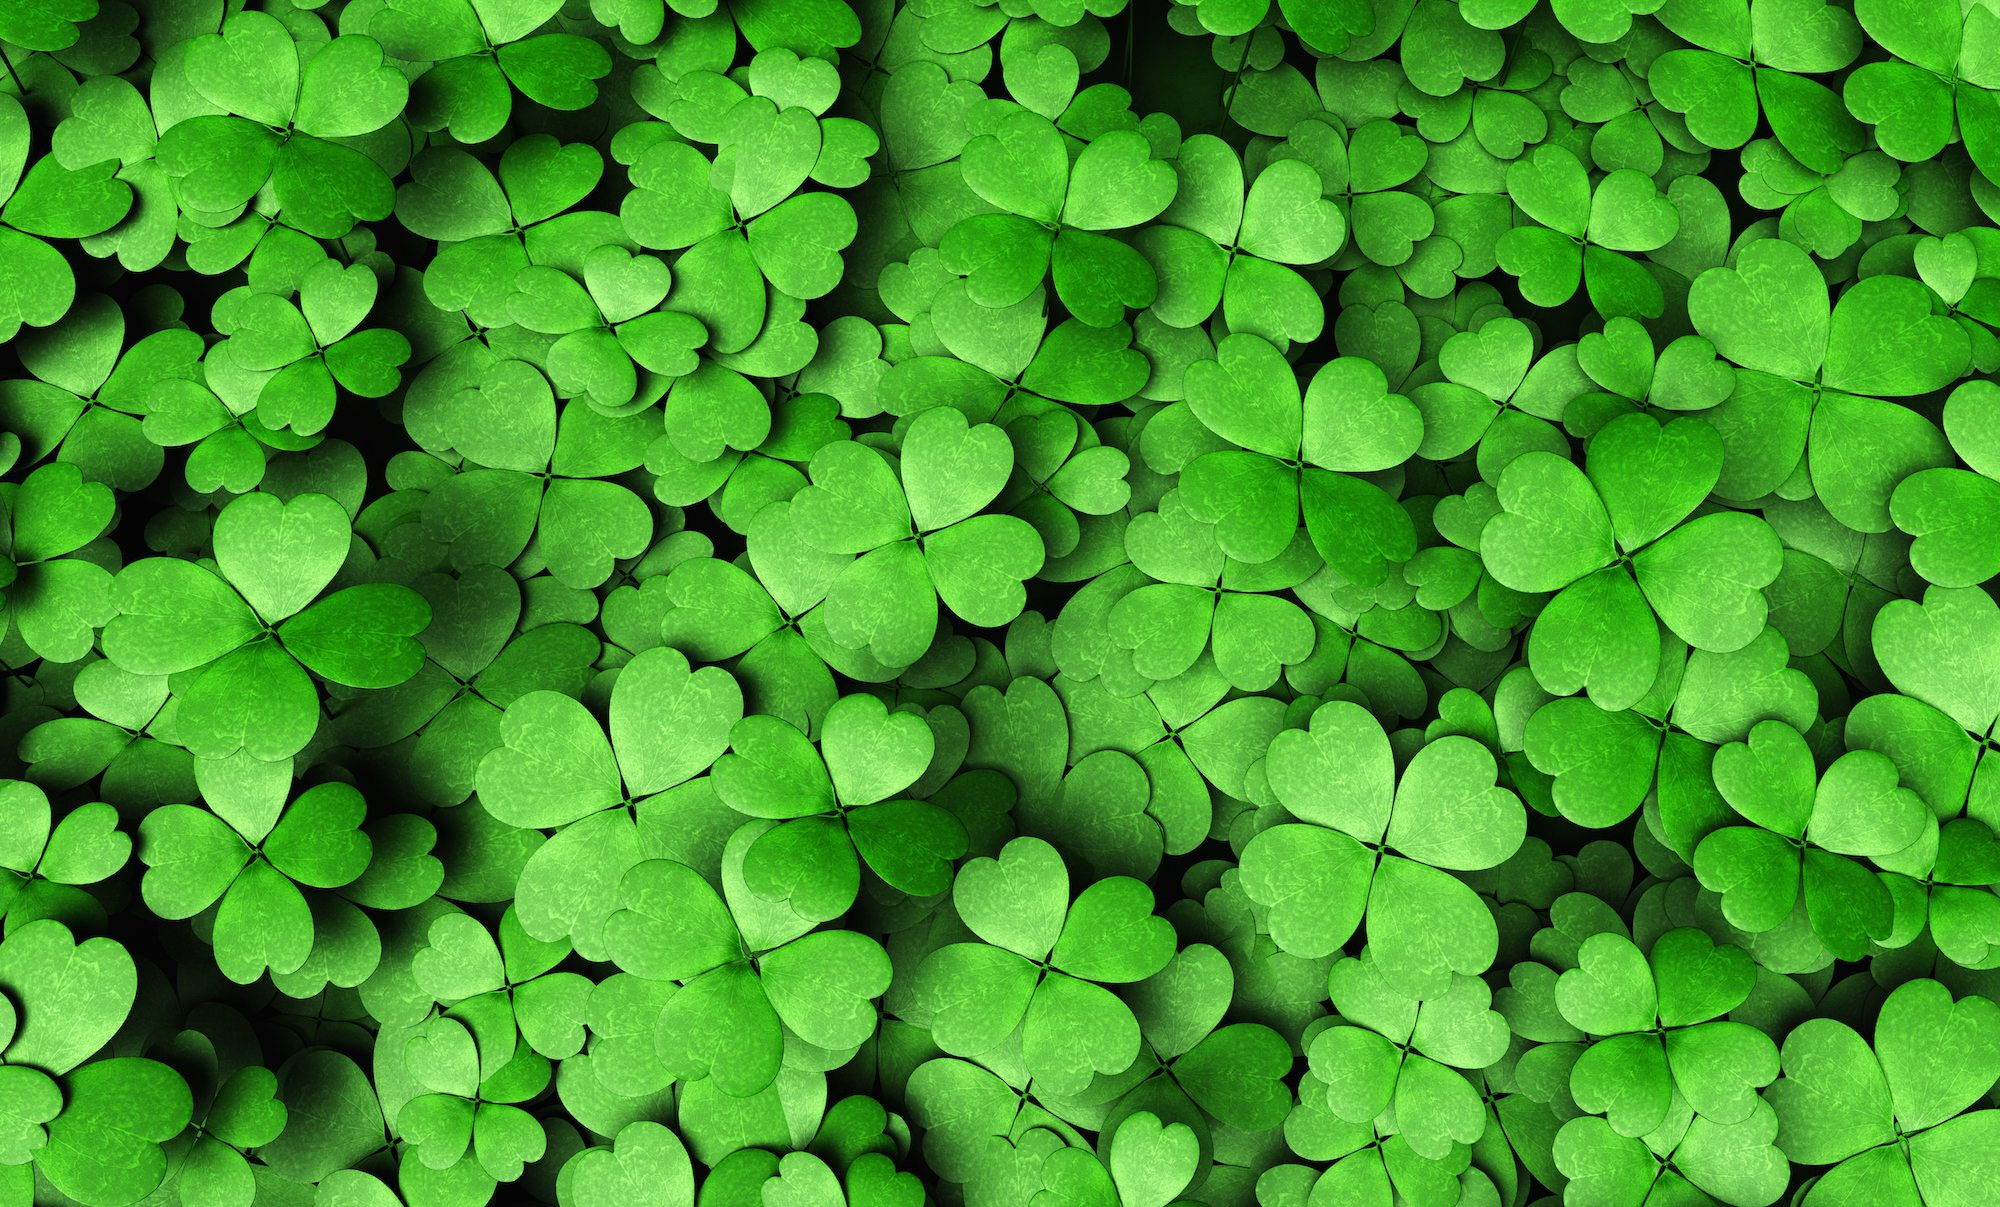 5 Best Cities To Celebrate St. Patrick's Day